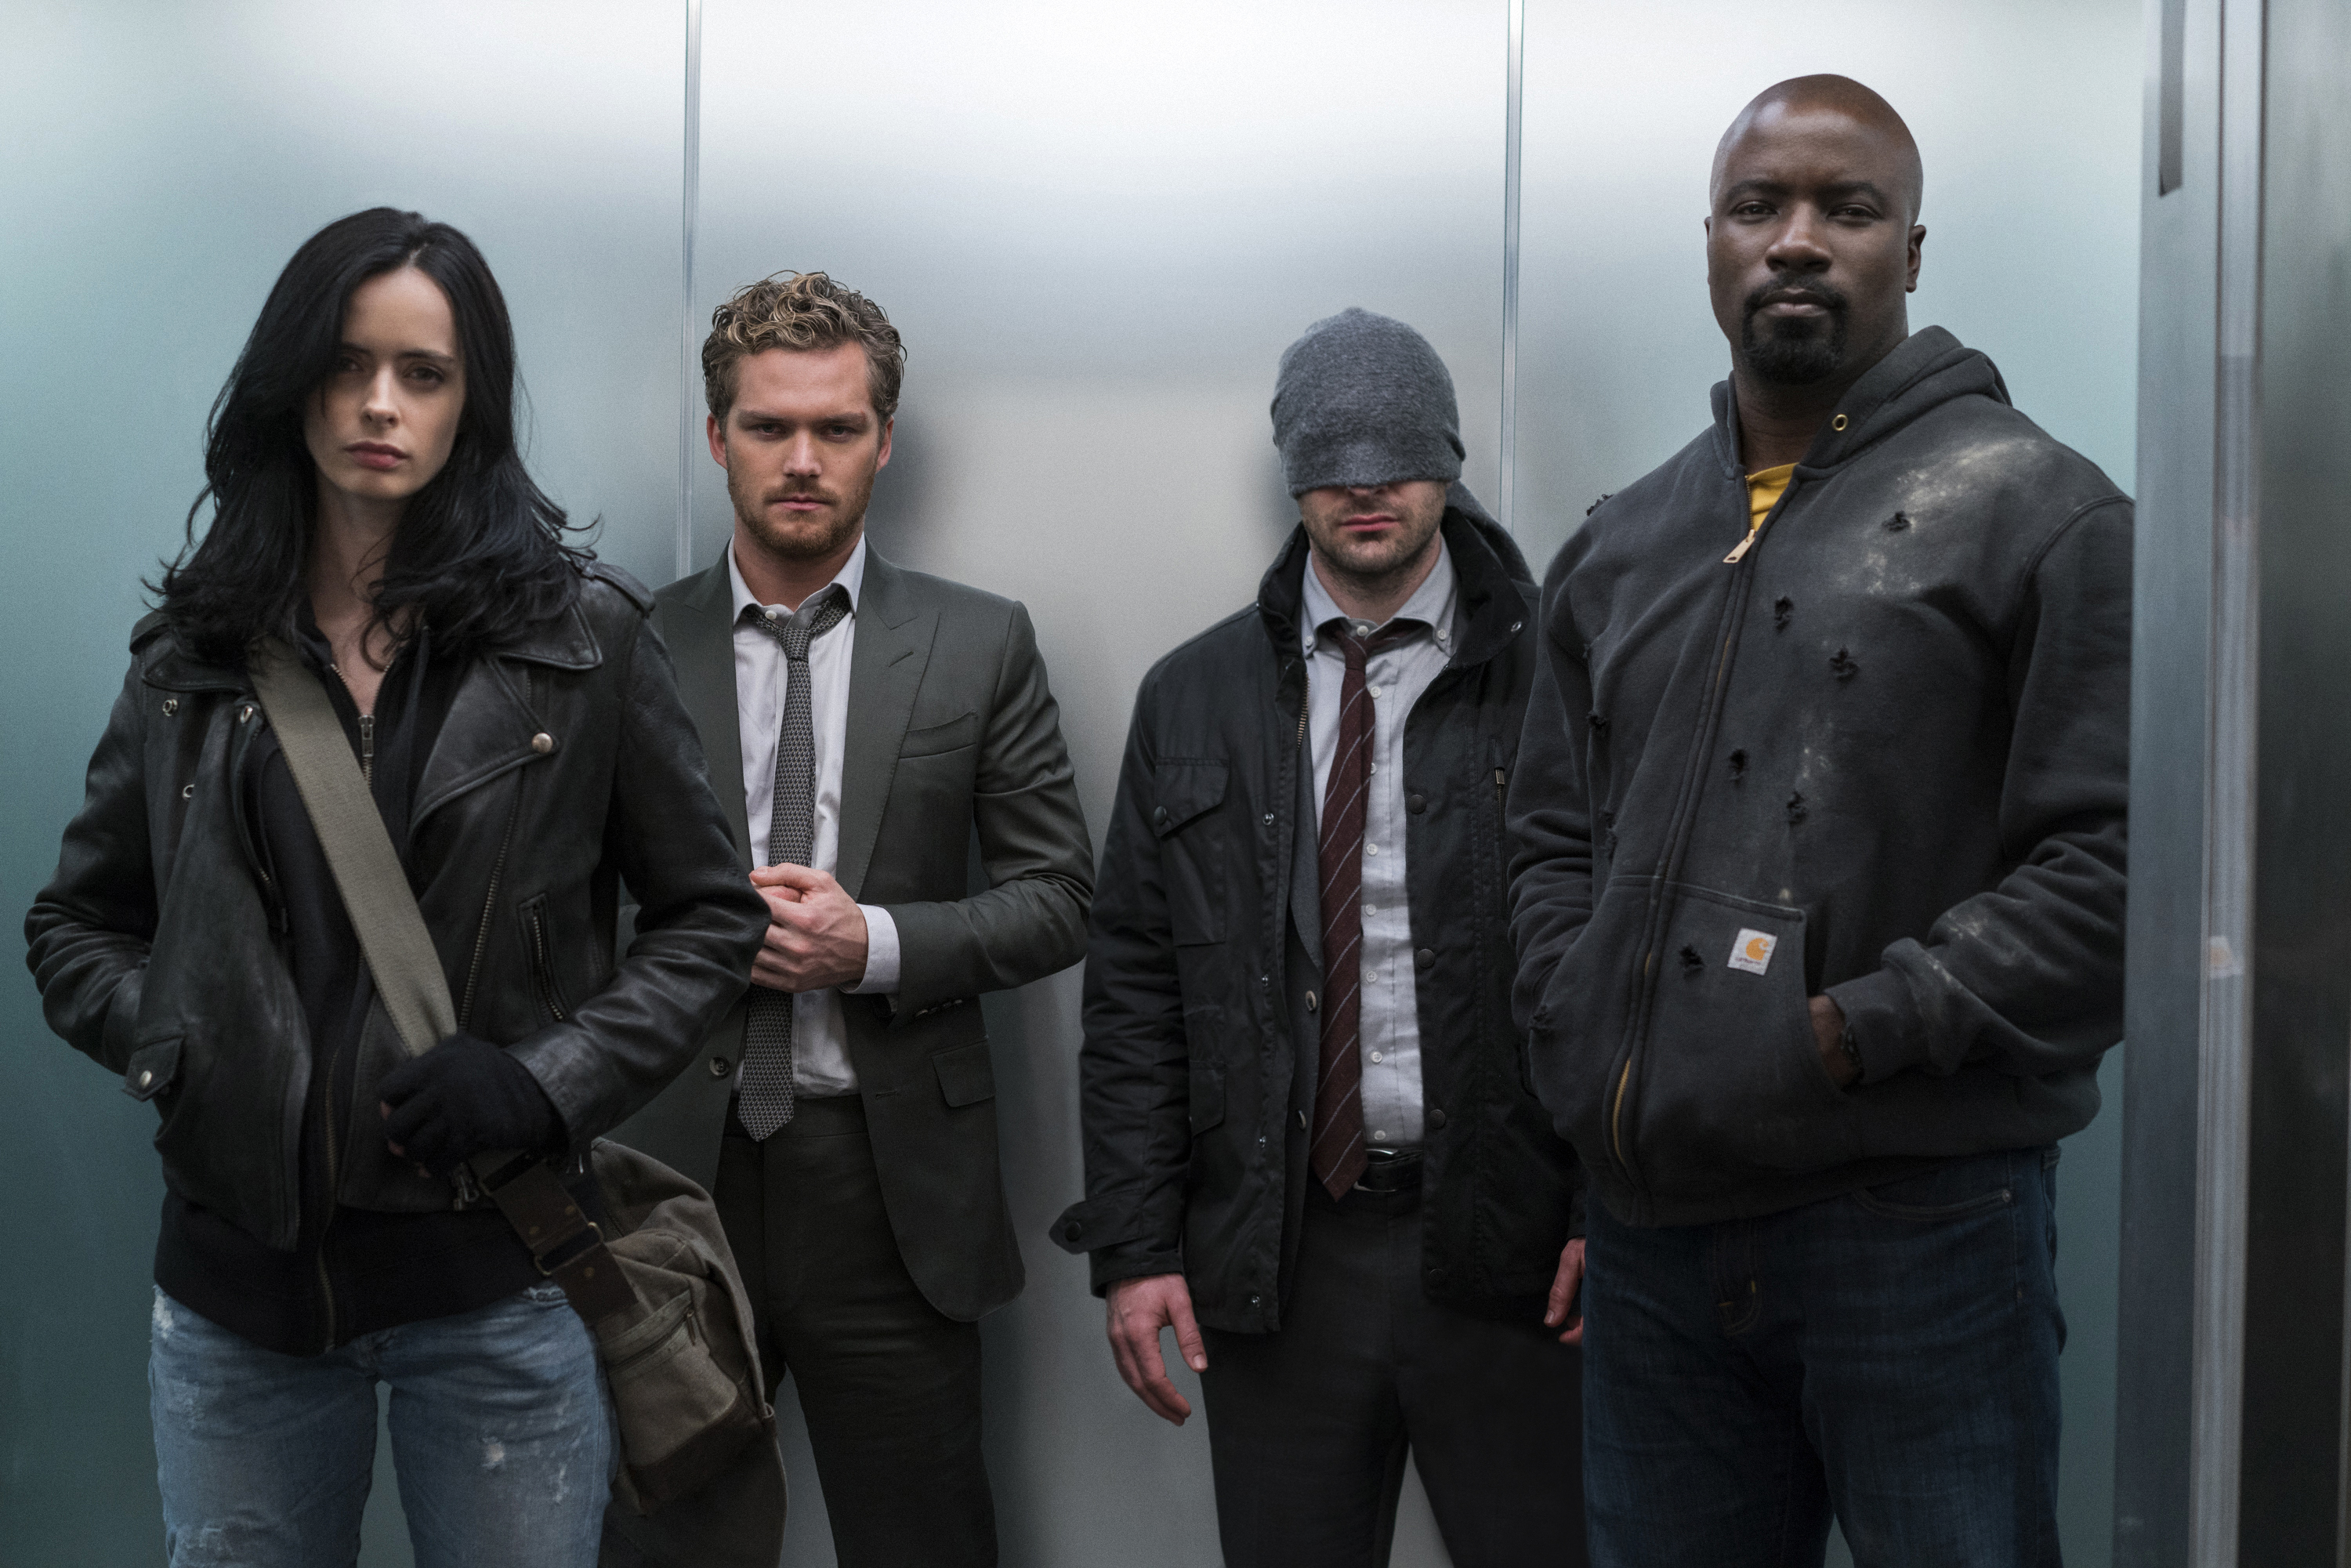 'Marvel's The Defenders' Is Now Certified Fresh On Rotten Tomatoes